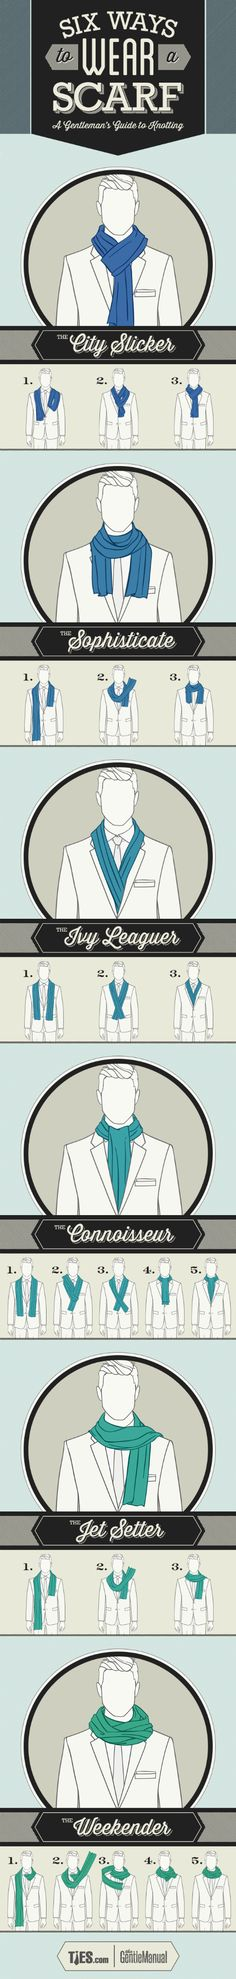 Prescription: Trending. The Ultimate Gentleman Cheat Sheet Every Man Needs how to wear a scarve and totally nail it.